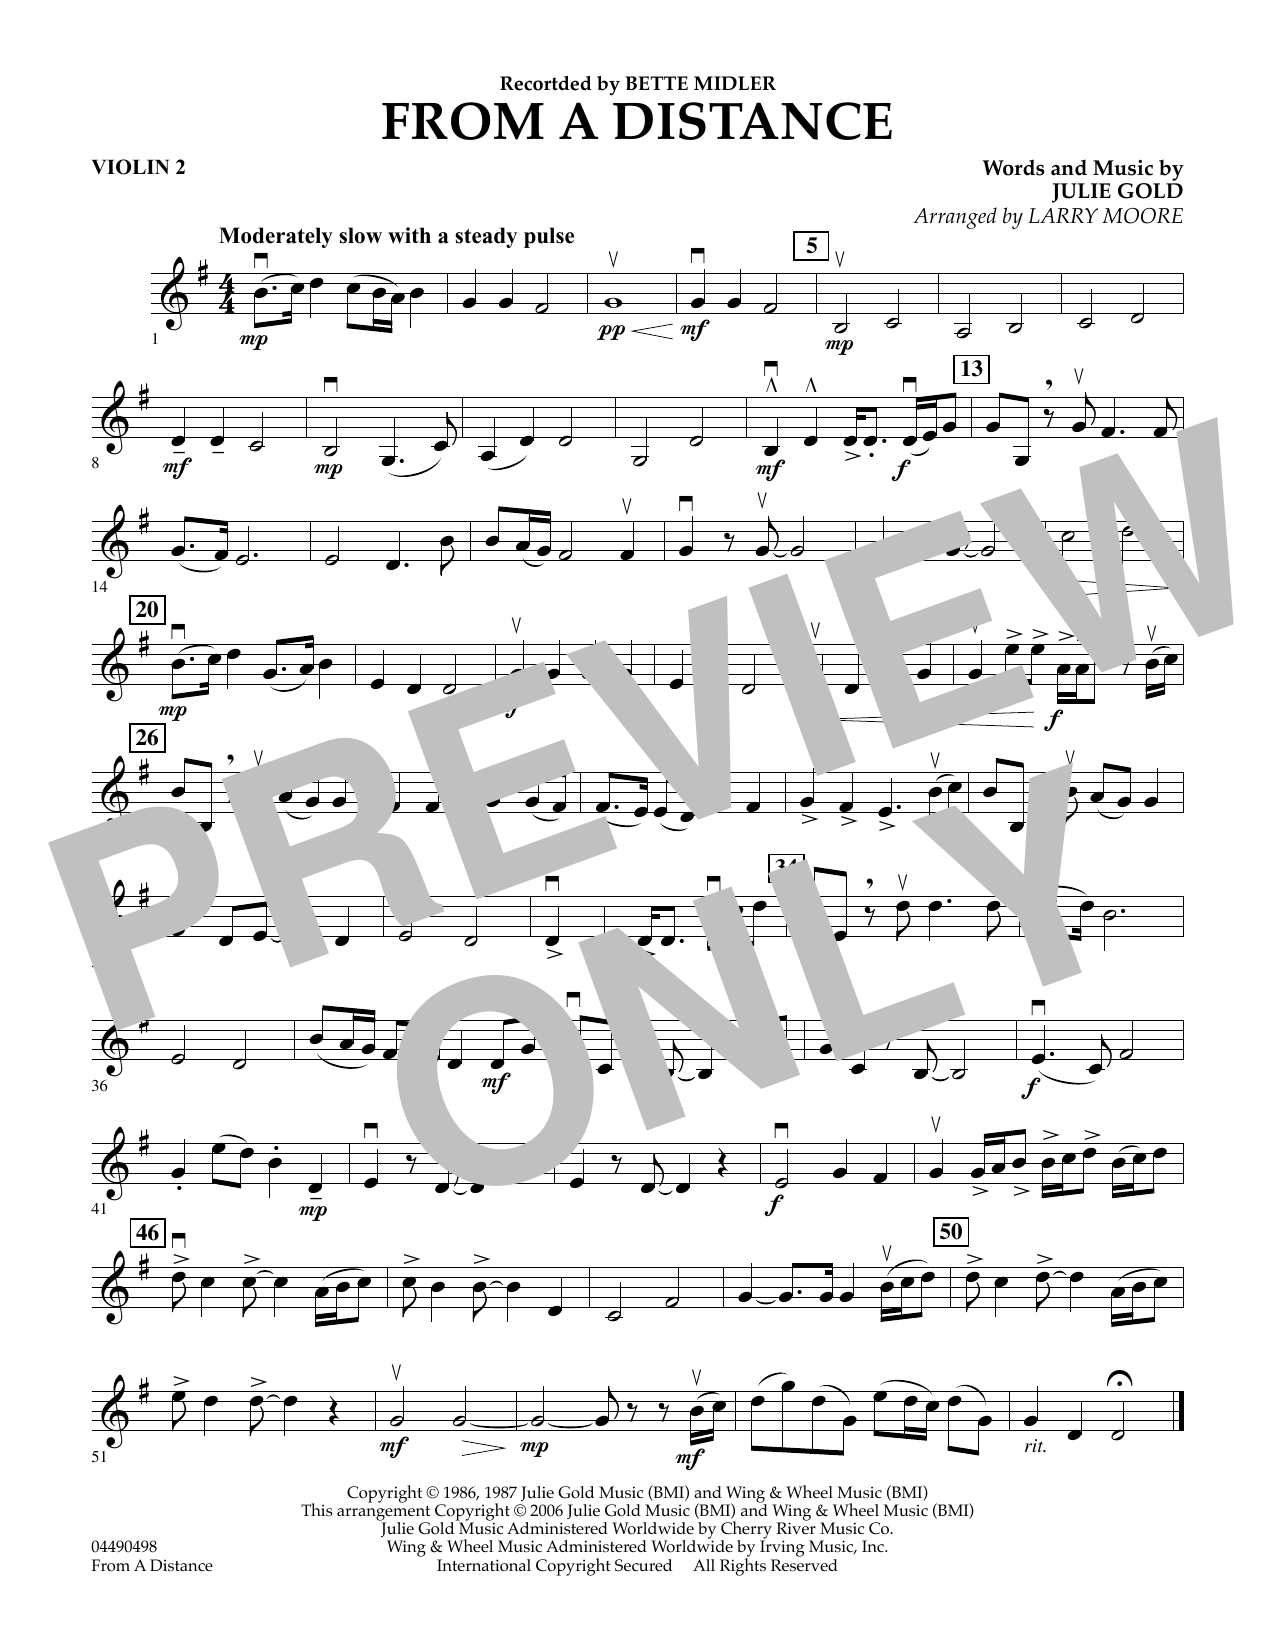 Download Julie Gold 'From a Distance (arr. Larry Moore) - Violin 2' Digital Sheet Music Notes & Chords and start playing in minutes